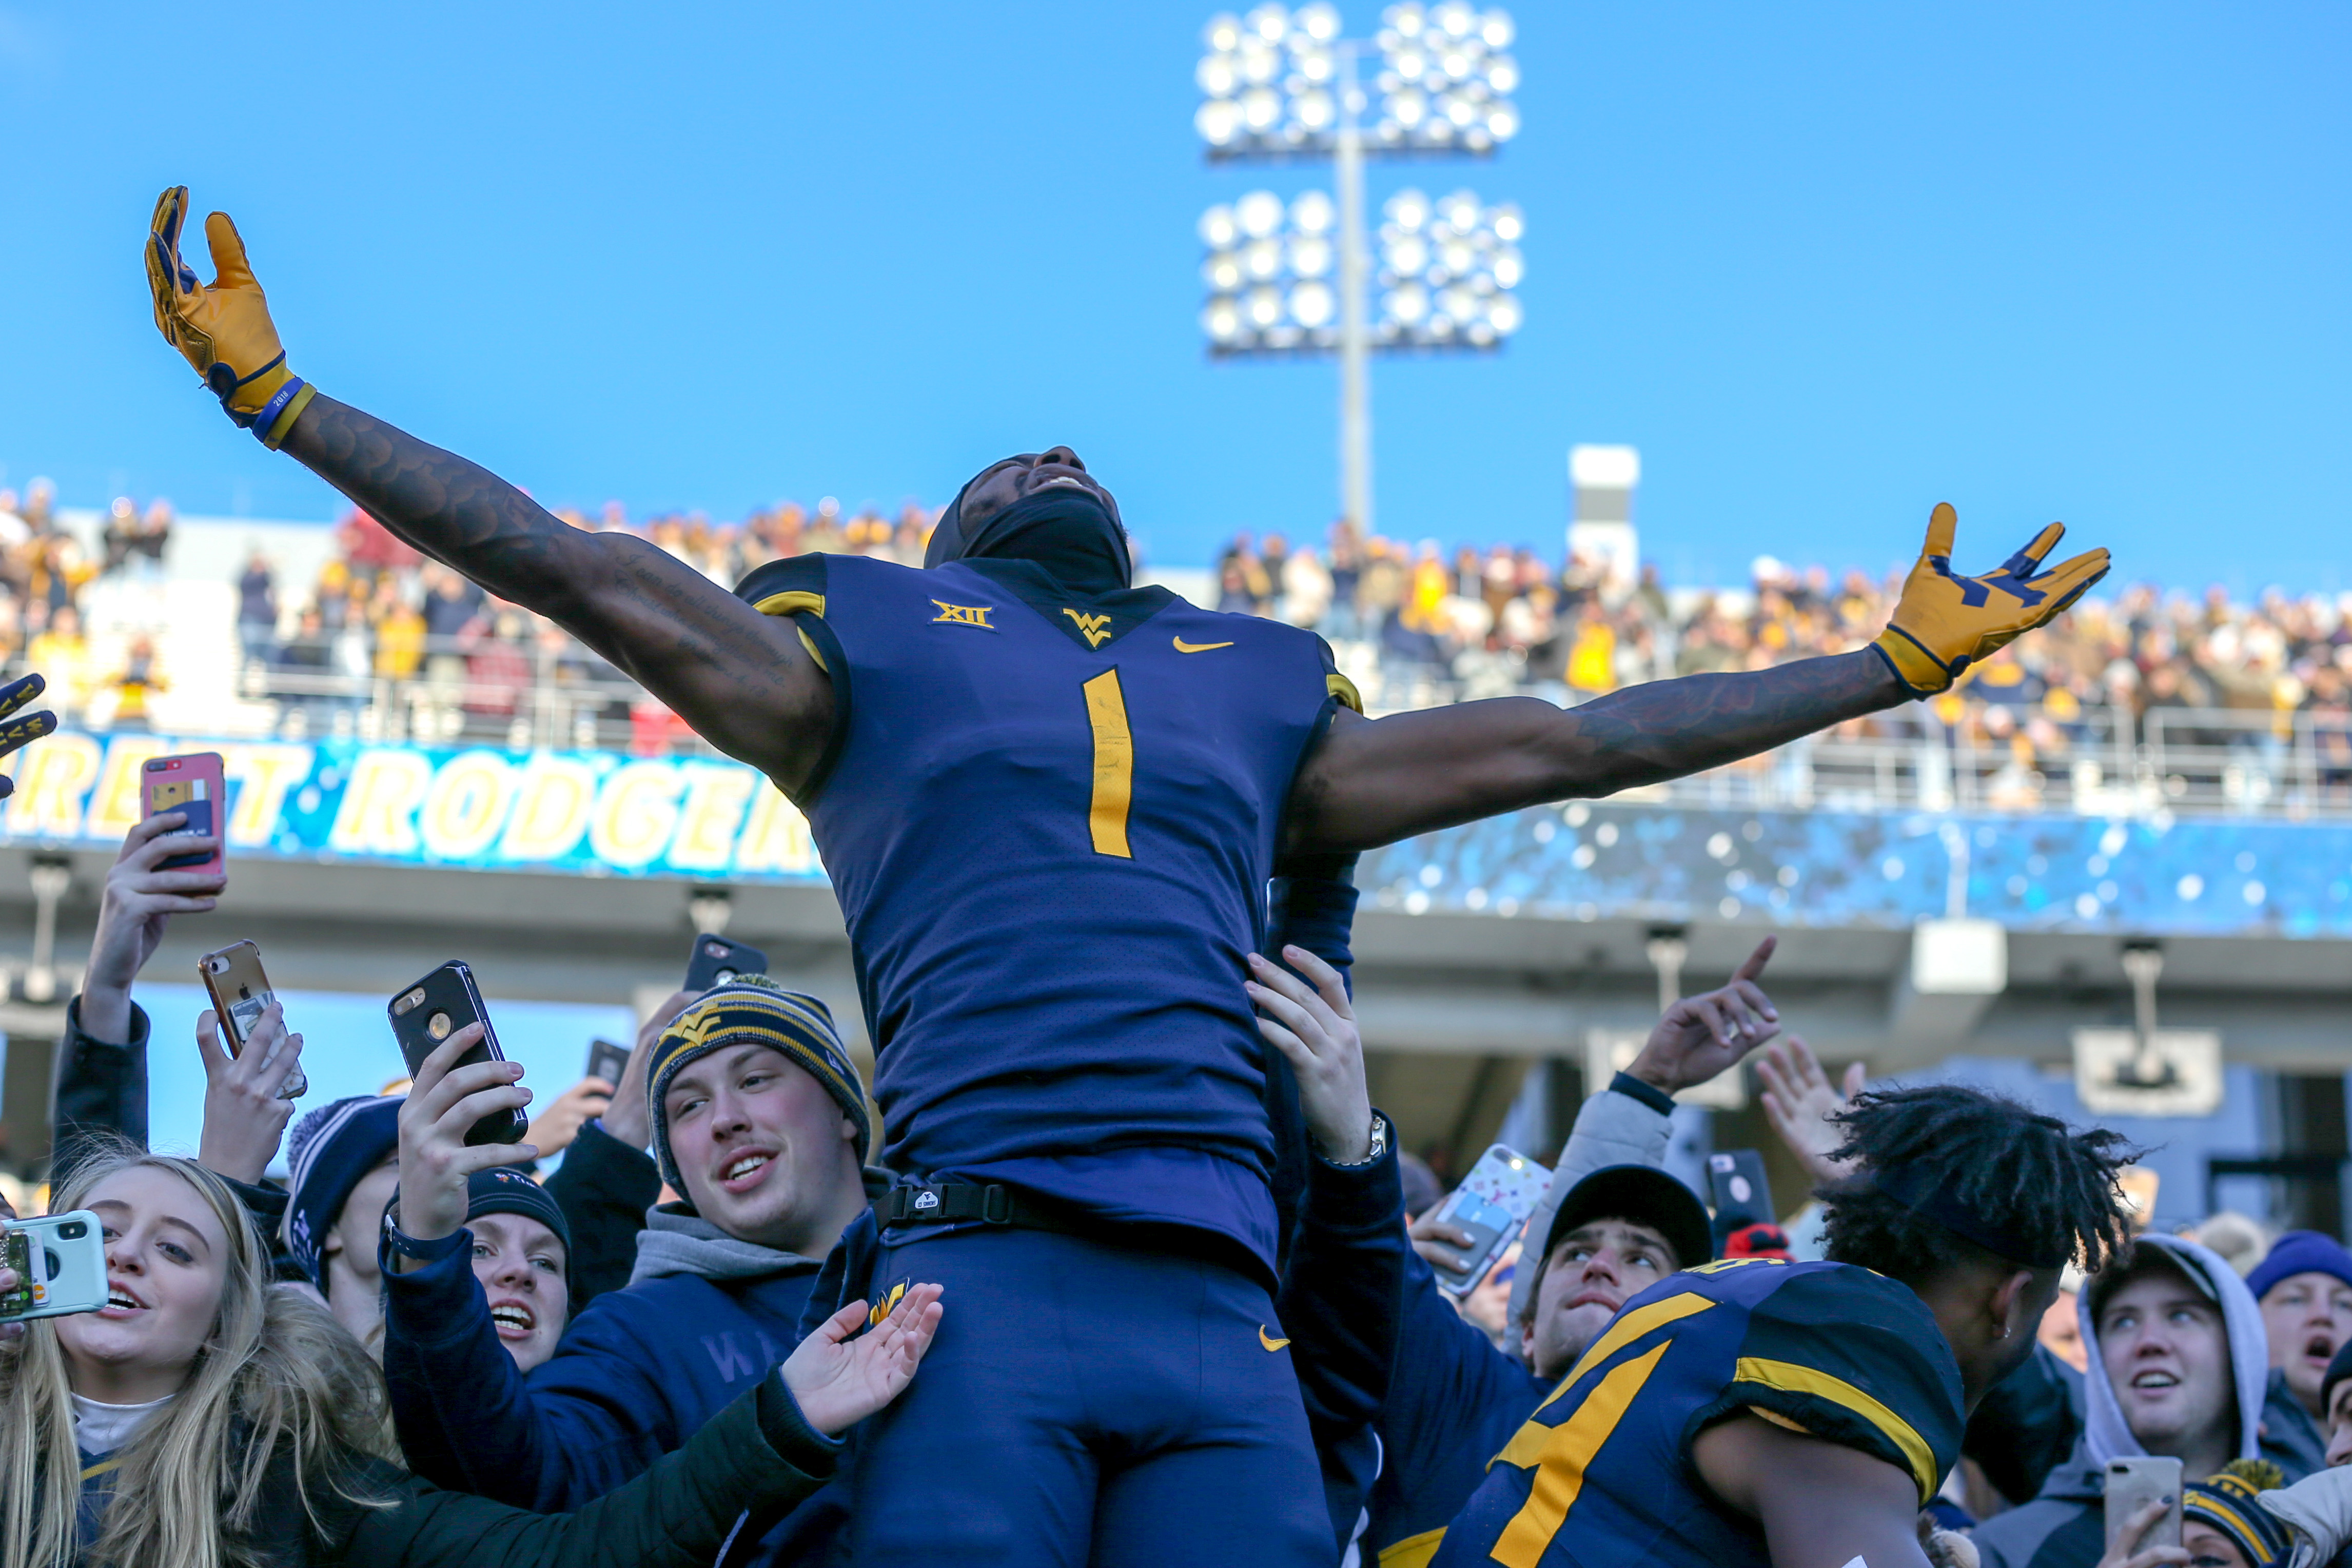 COLLEGE FOOTBALL: NOV 10 TCU at West Virginia